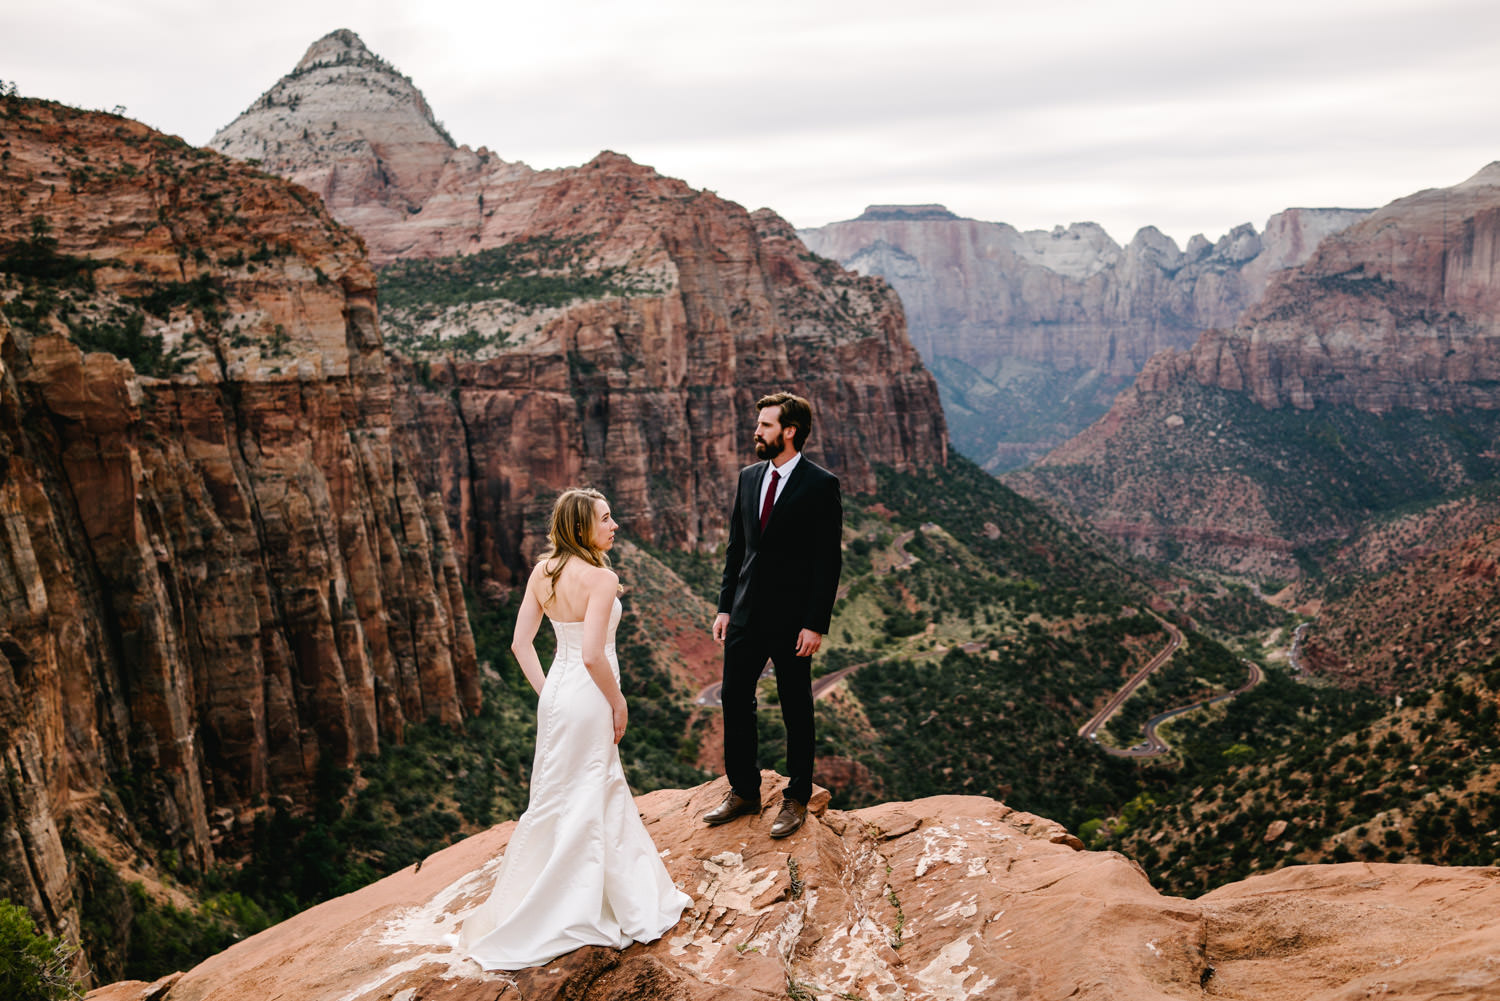 zionnationalpark_utah_destinationweddingphotographer_austendiamondphotography-1